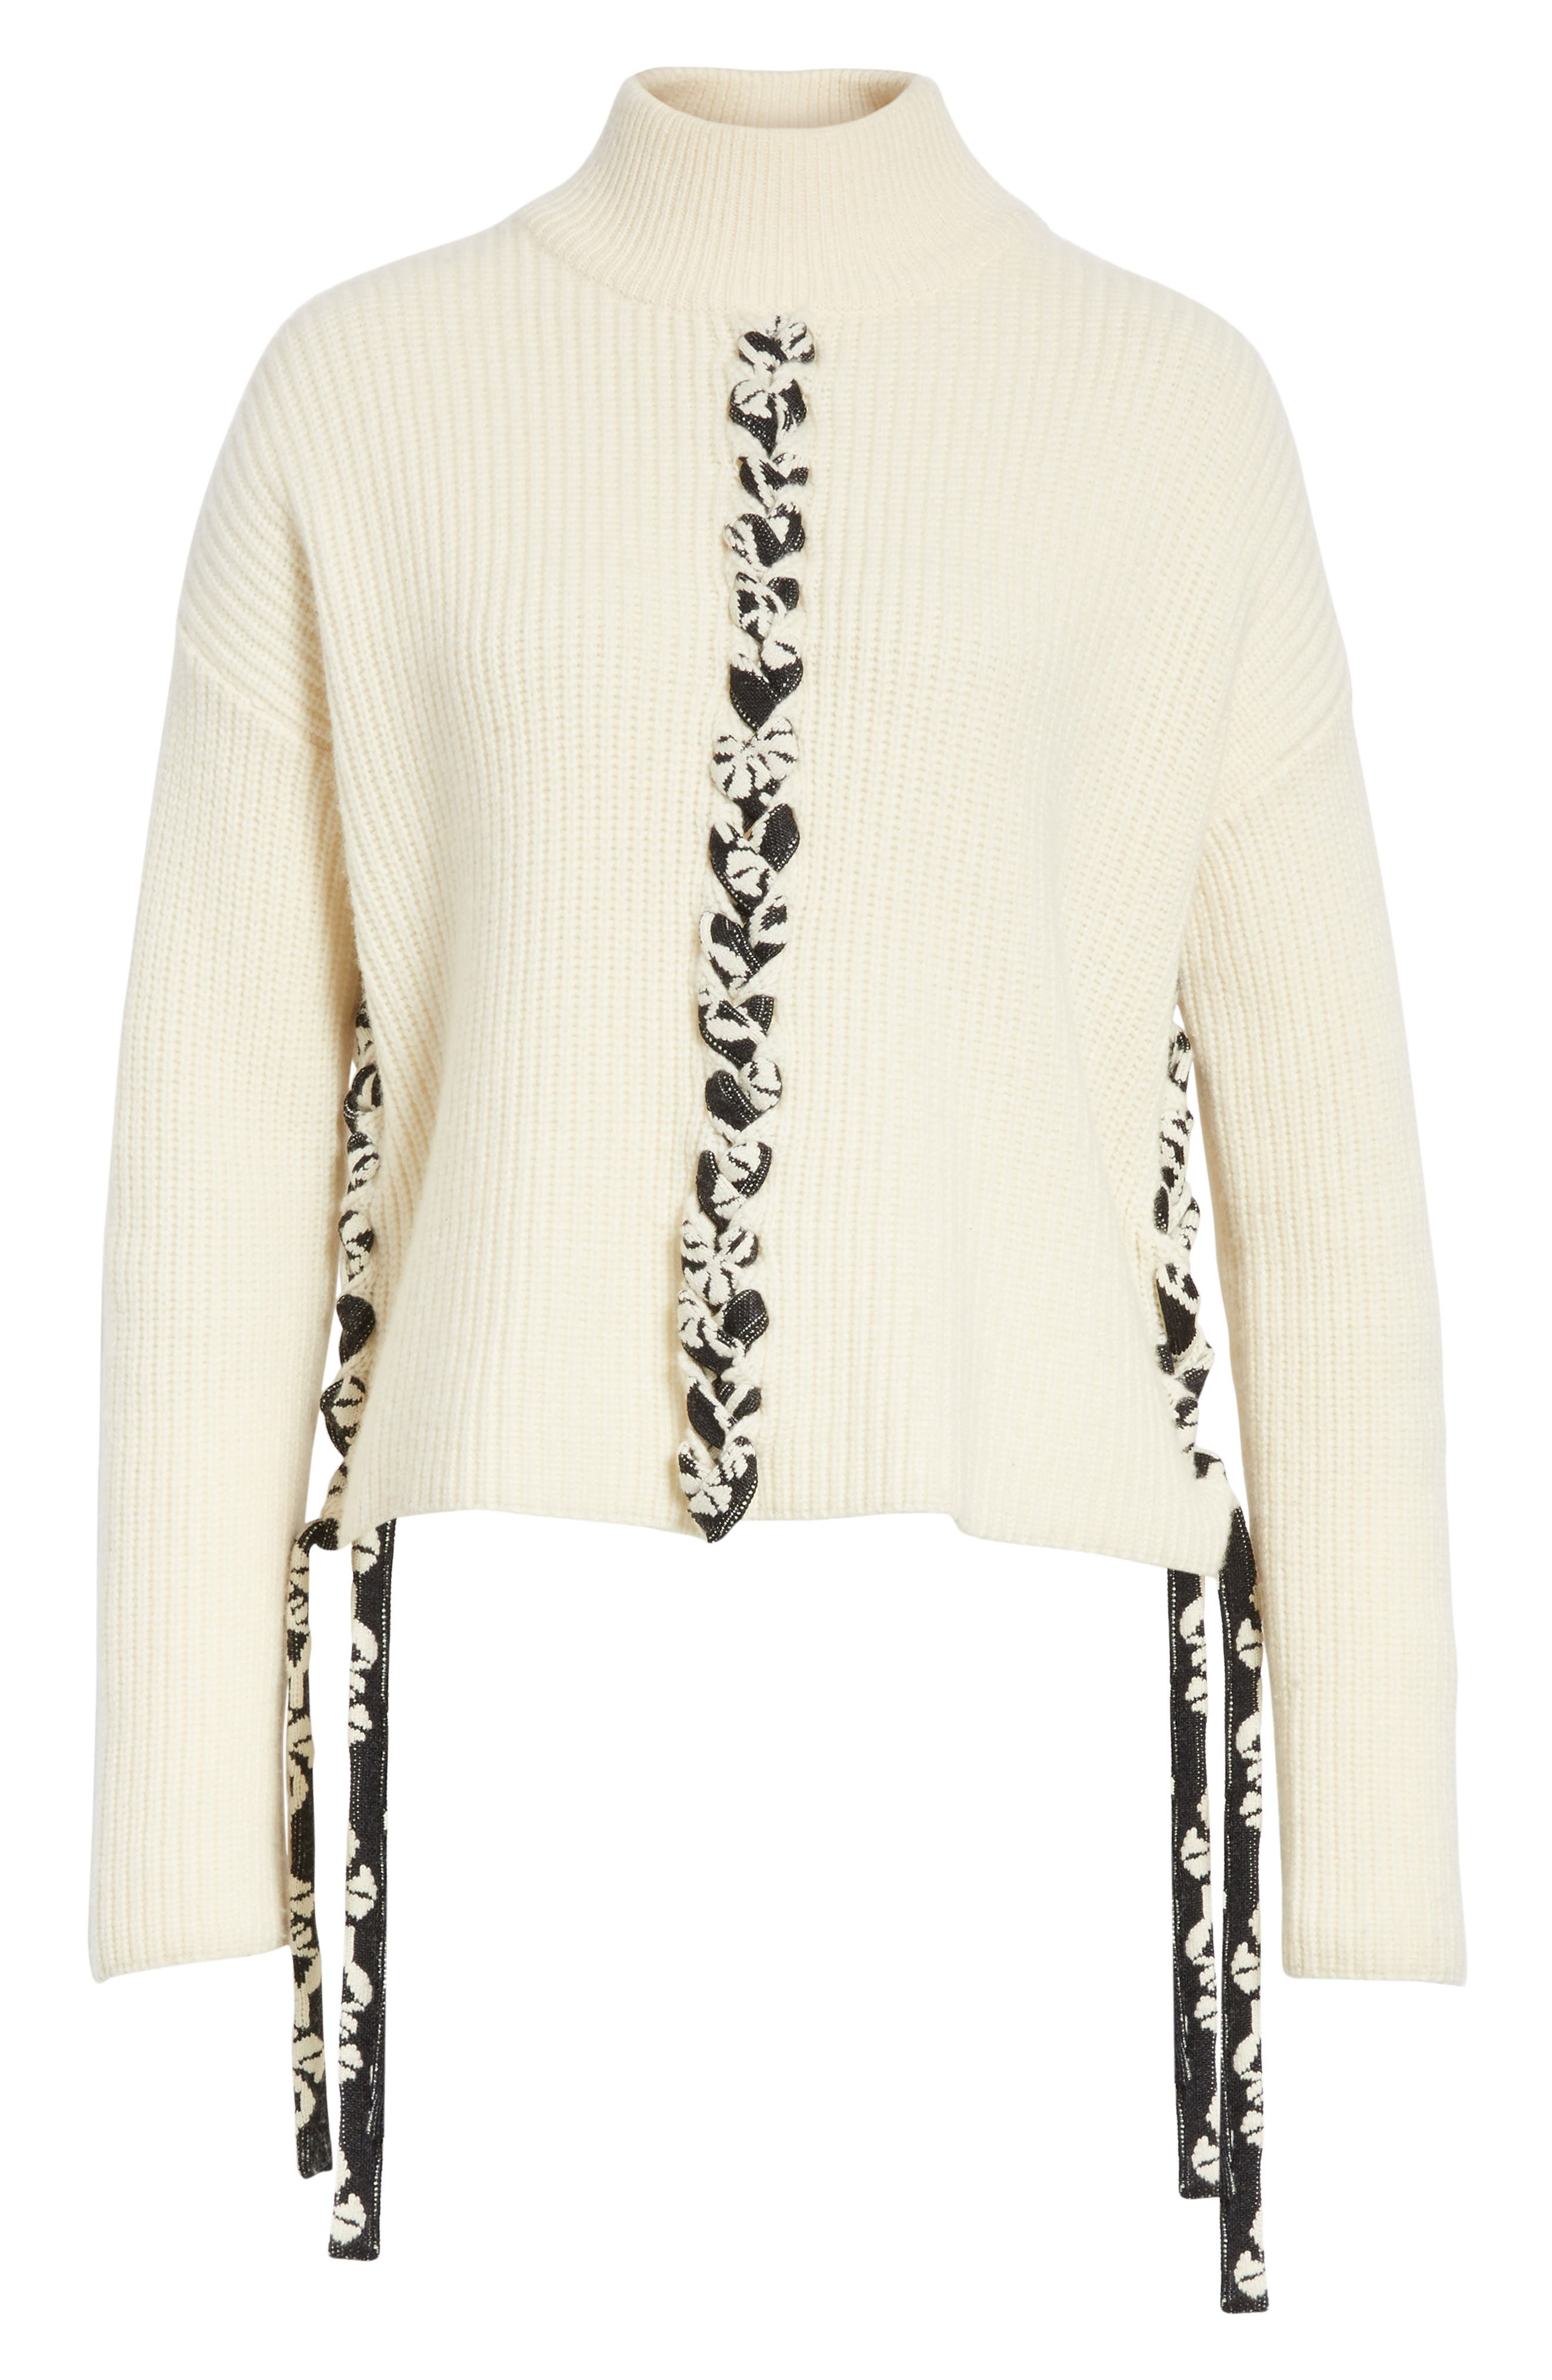 Mughal Lace-Up Sweater,                             Alternate thumbnail 6, color,                             Off White W/ Jacquard Ties